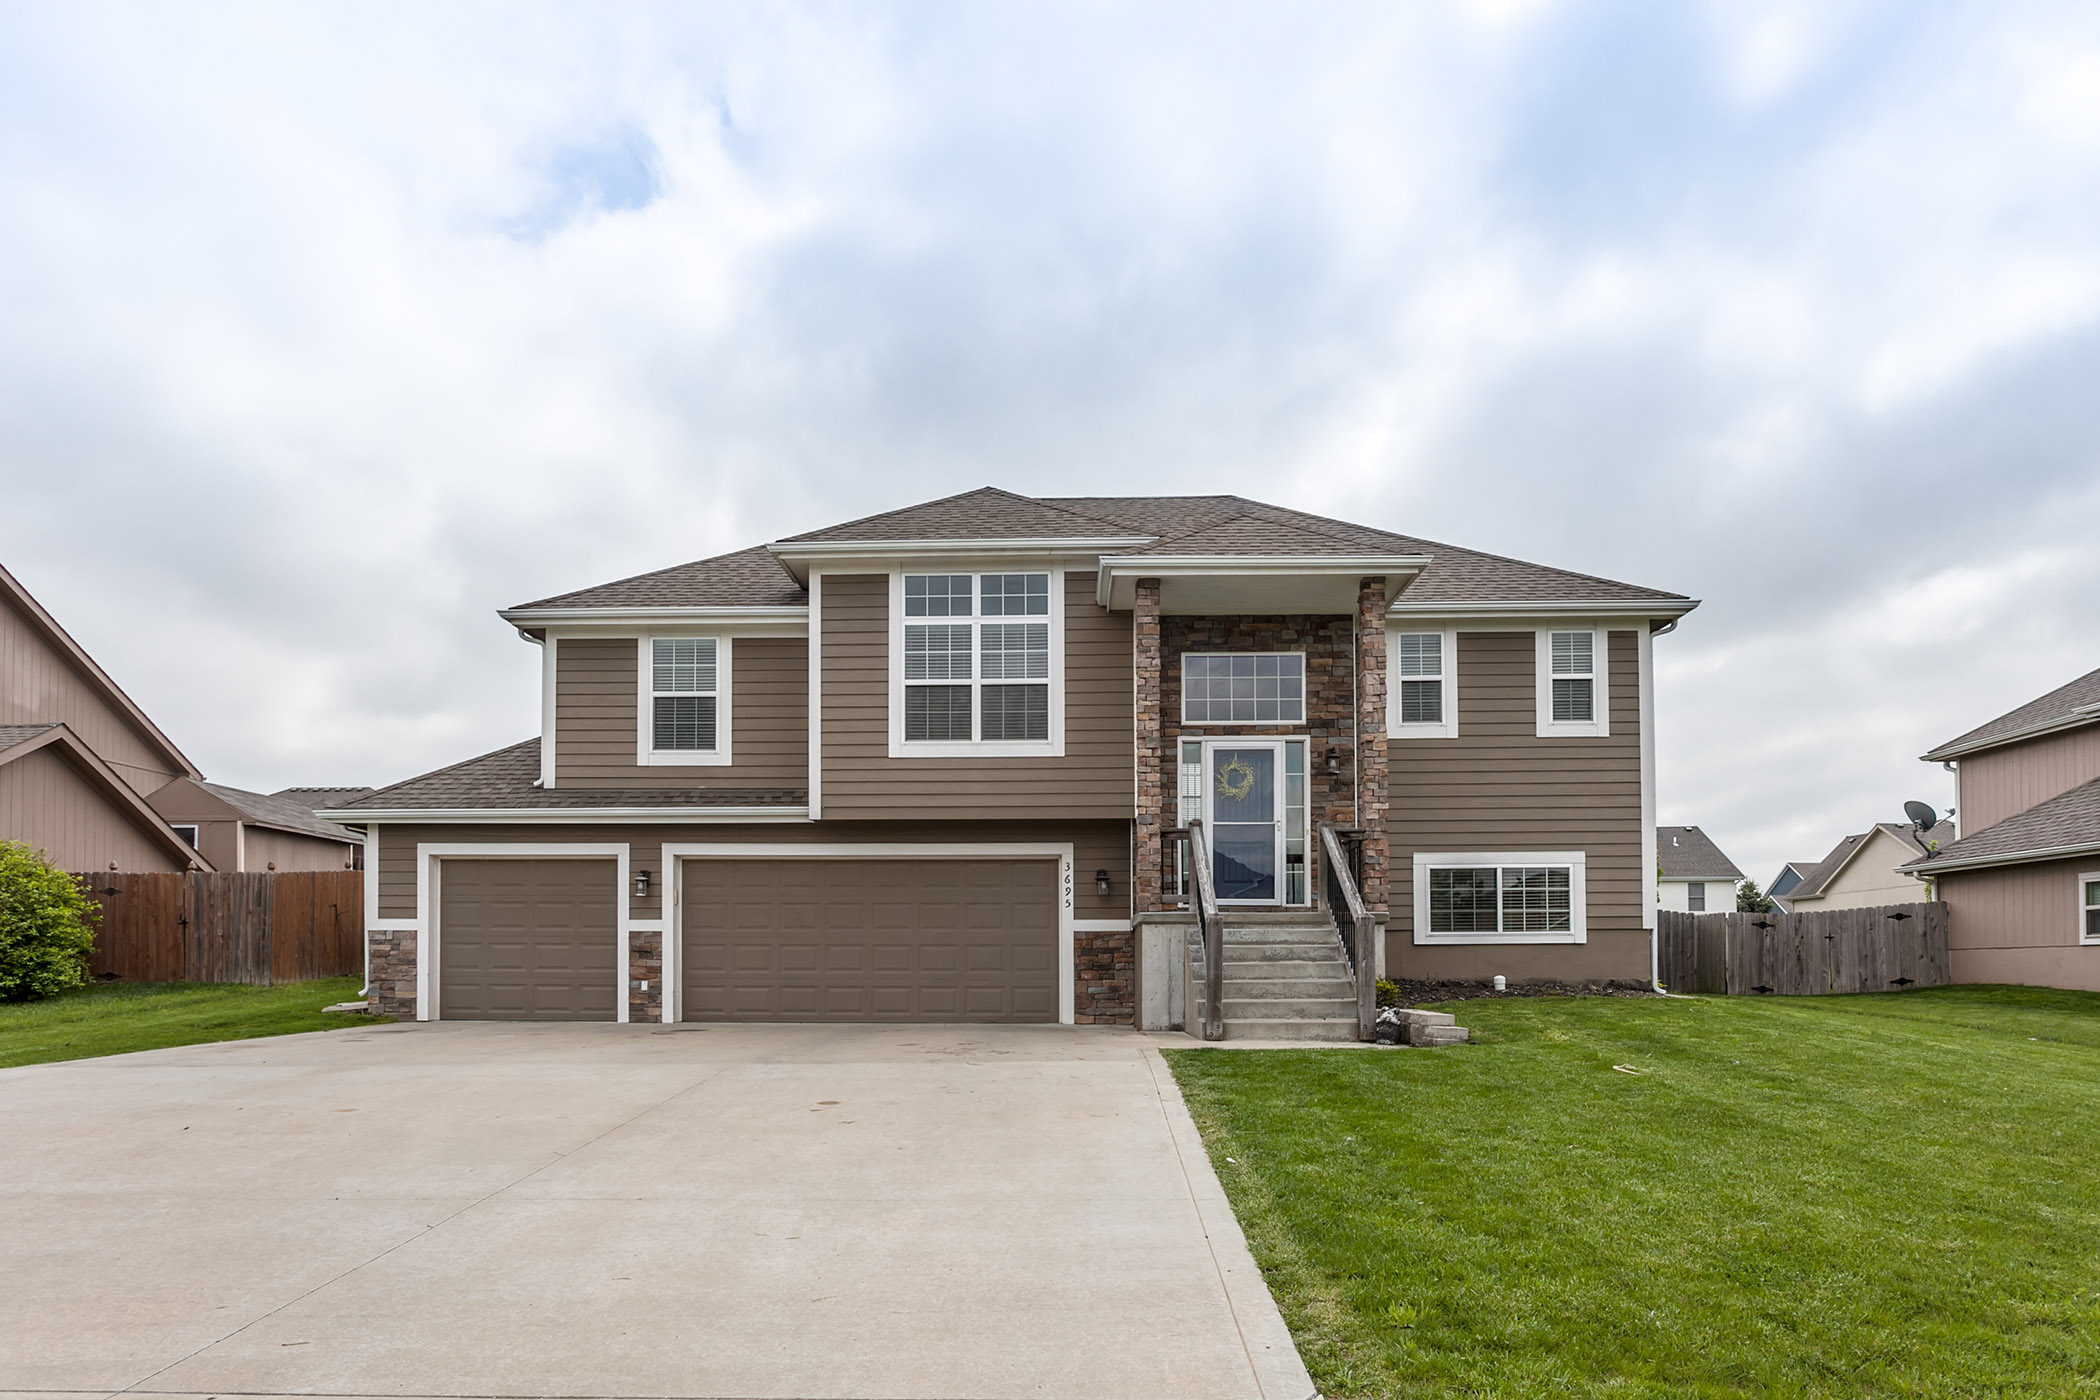 JUST LISTED and OPEN HOUSE! Beautiful 4 Bedroom Home with Room for Everyone!